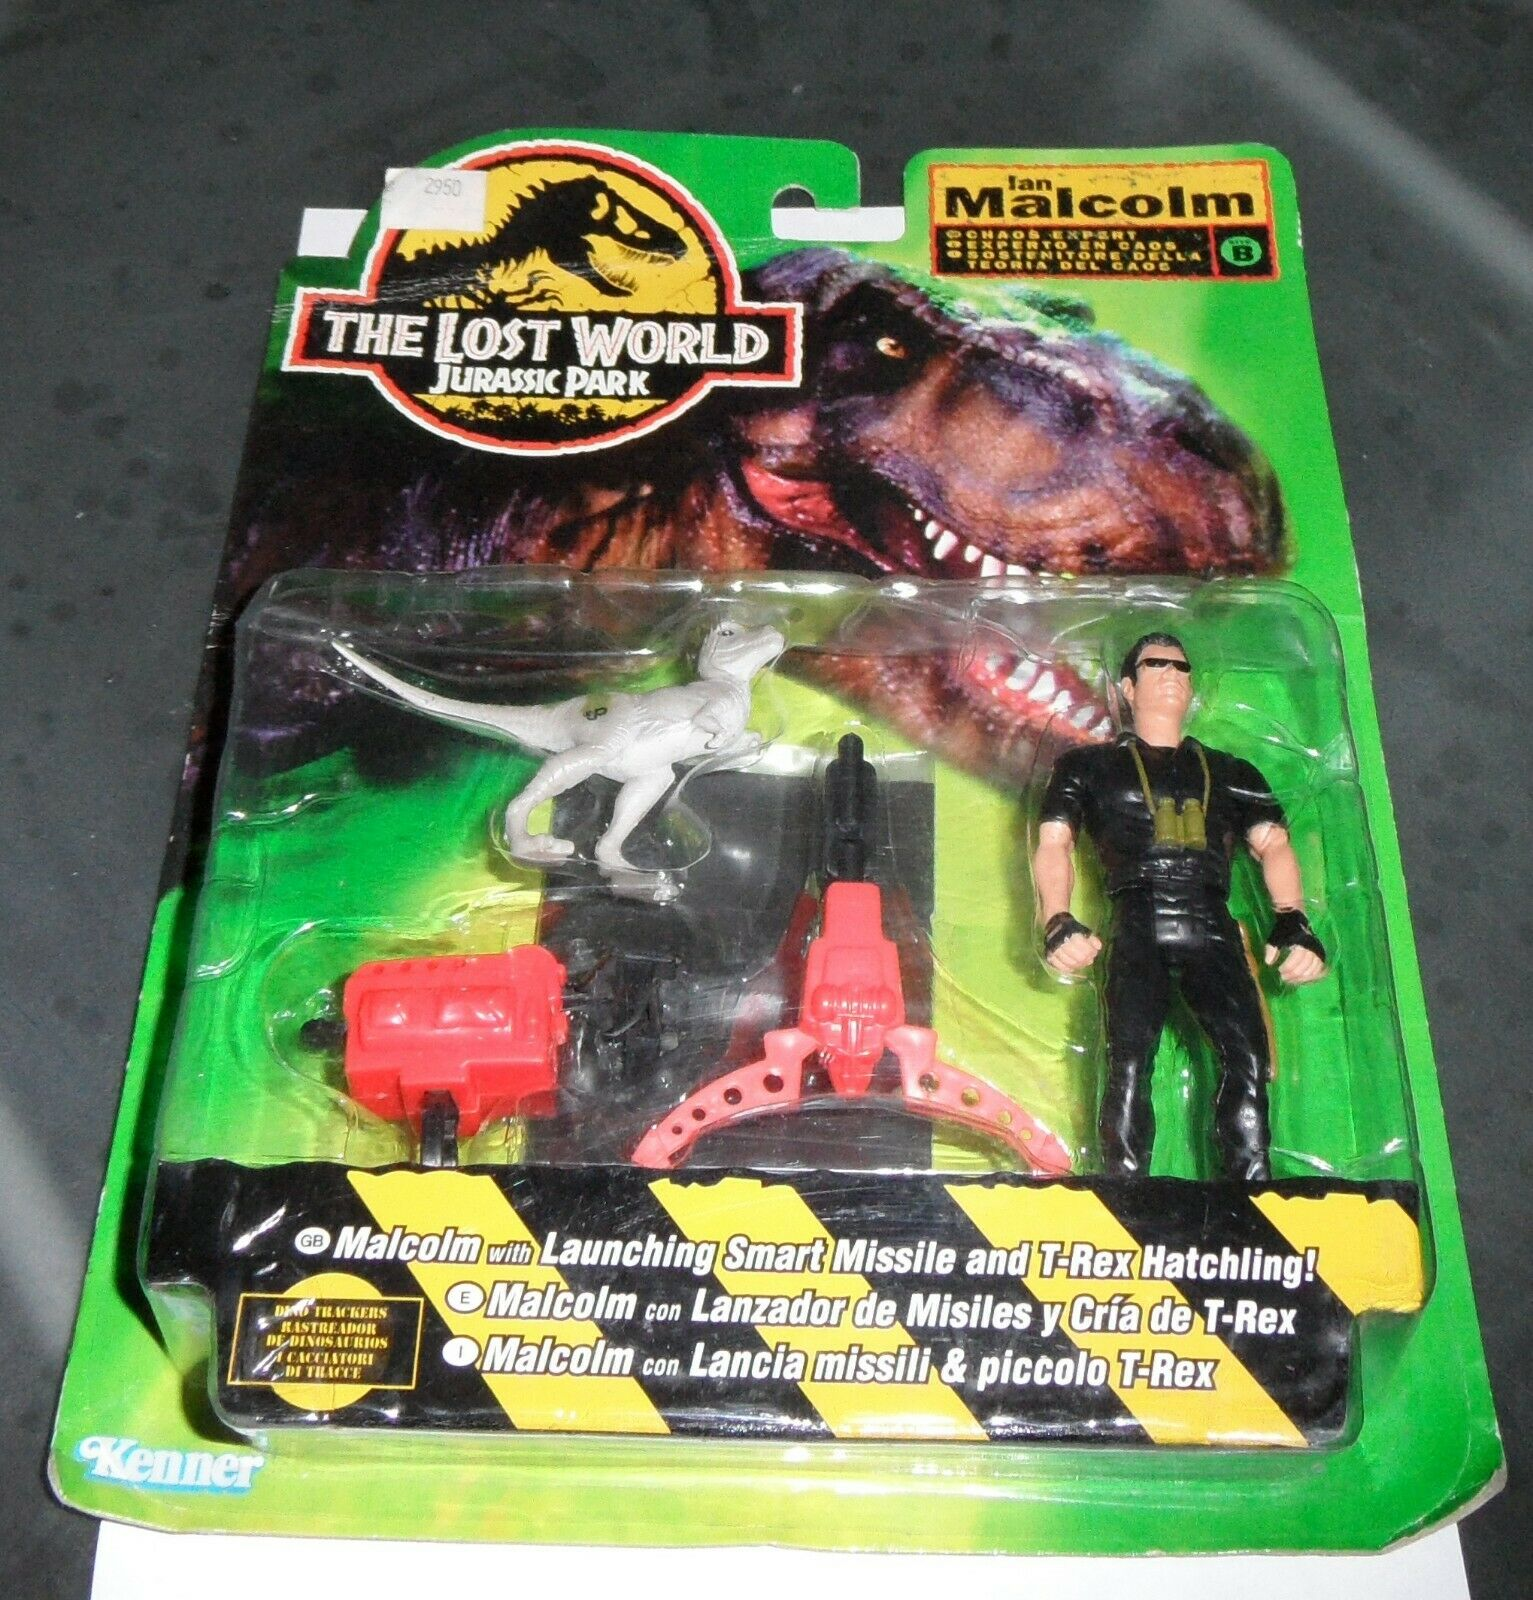 Vintage IAN MALCOLM JURASSIC PARK THE LOST WORLD Figure Carded MOC Sealed 1997